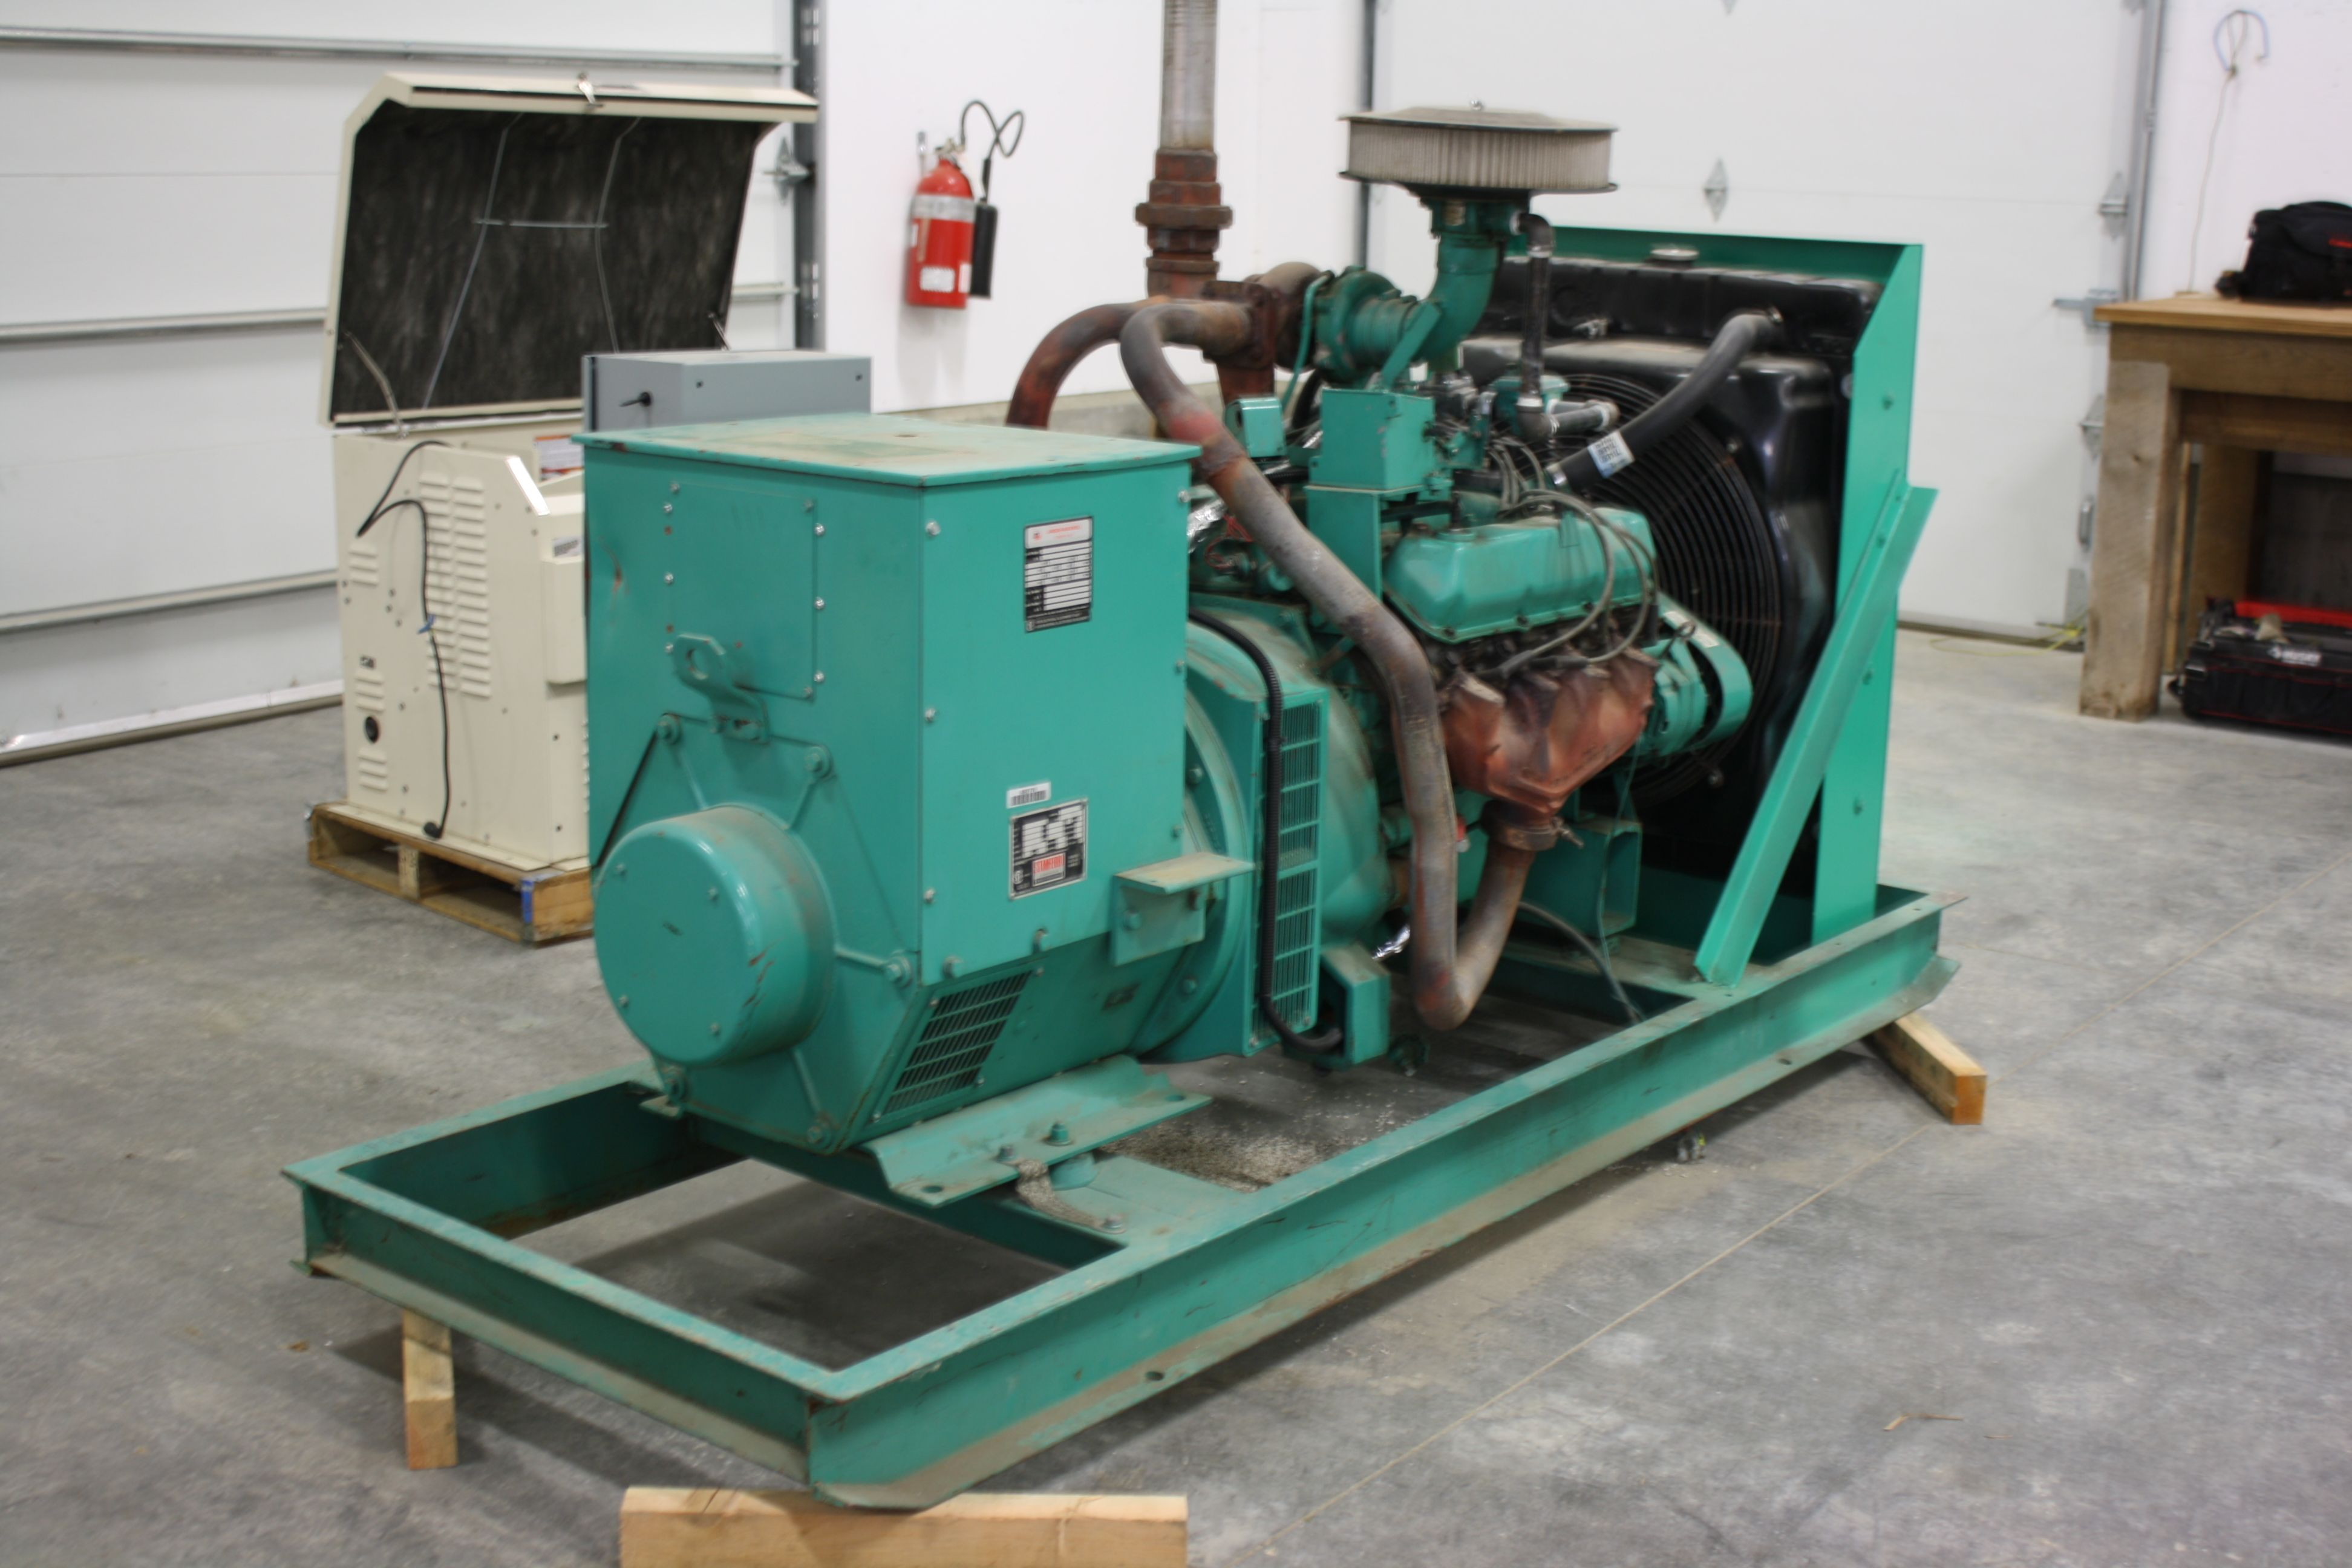 Used Simpson Maxwell Generator Blow Out Price 9500 90 Kwe 3 Phase Natural Gas Or 65 Kwe Single Pha Generators For Sale Used Generators For Sale Generation